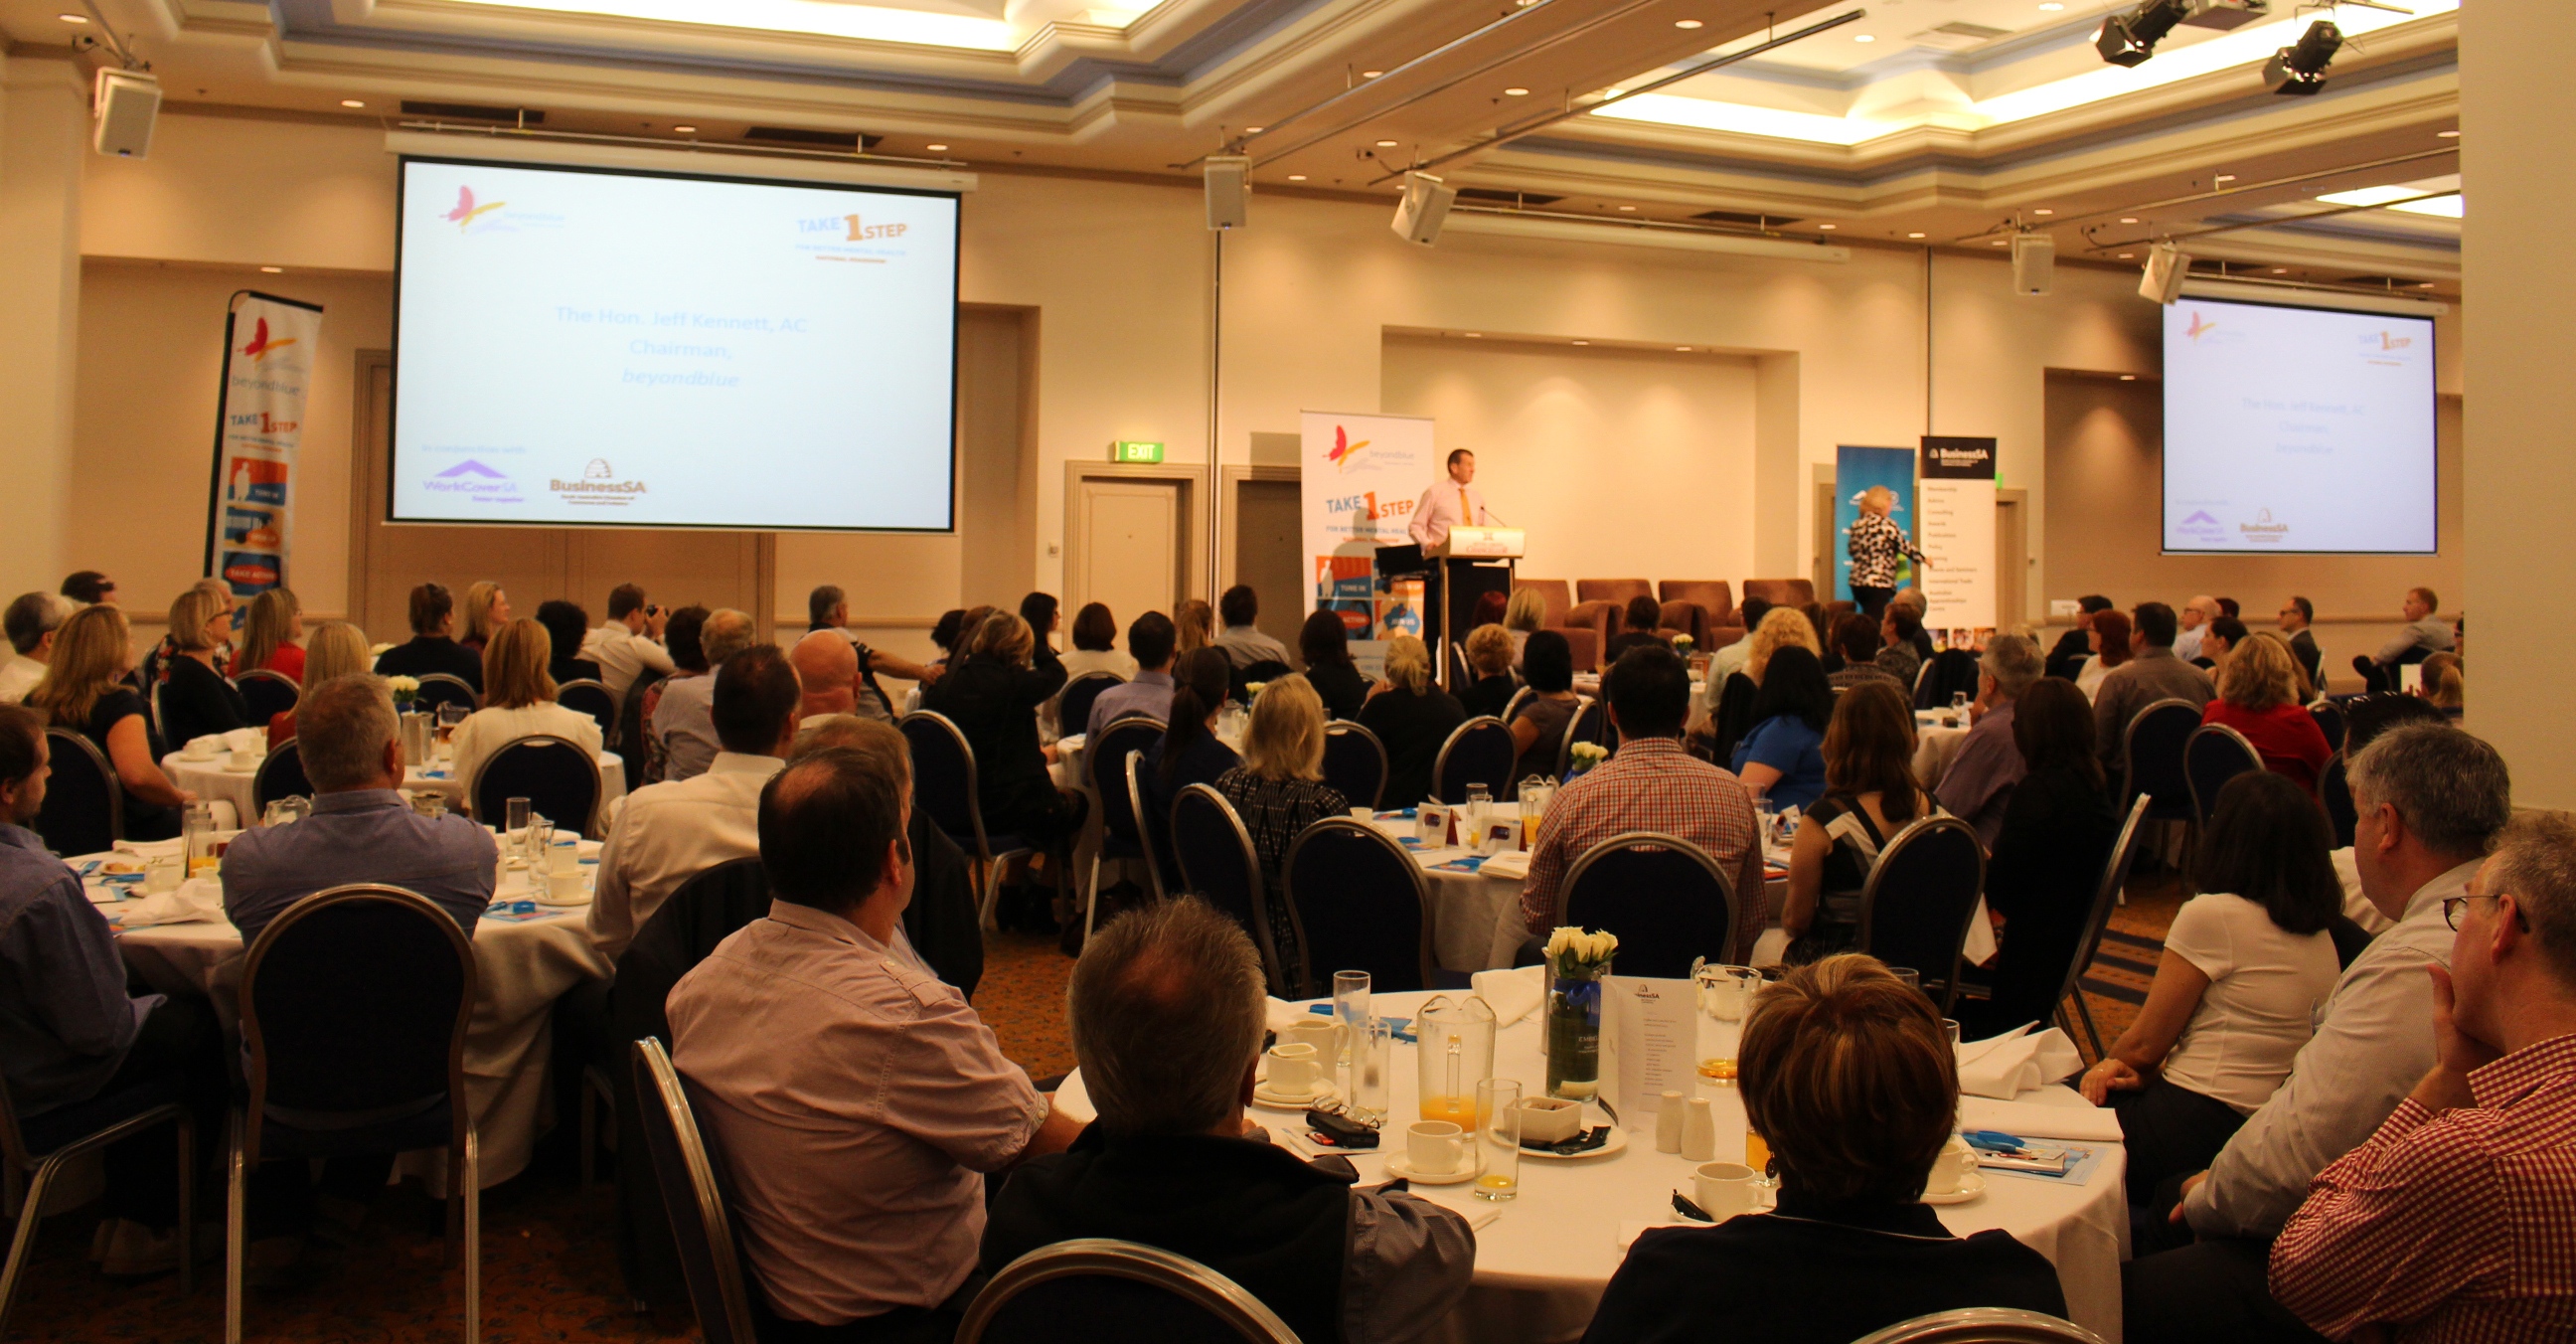 Jeff Kennett speaking to 200 business owners and managers at a workplace breakfast in Adelaide: SA.